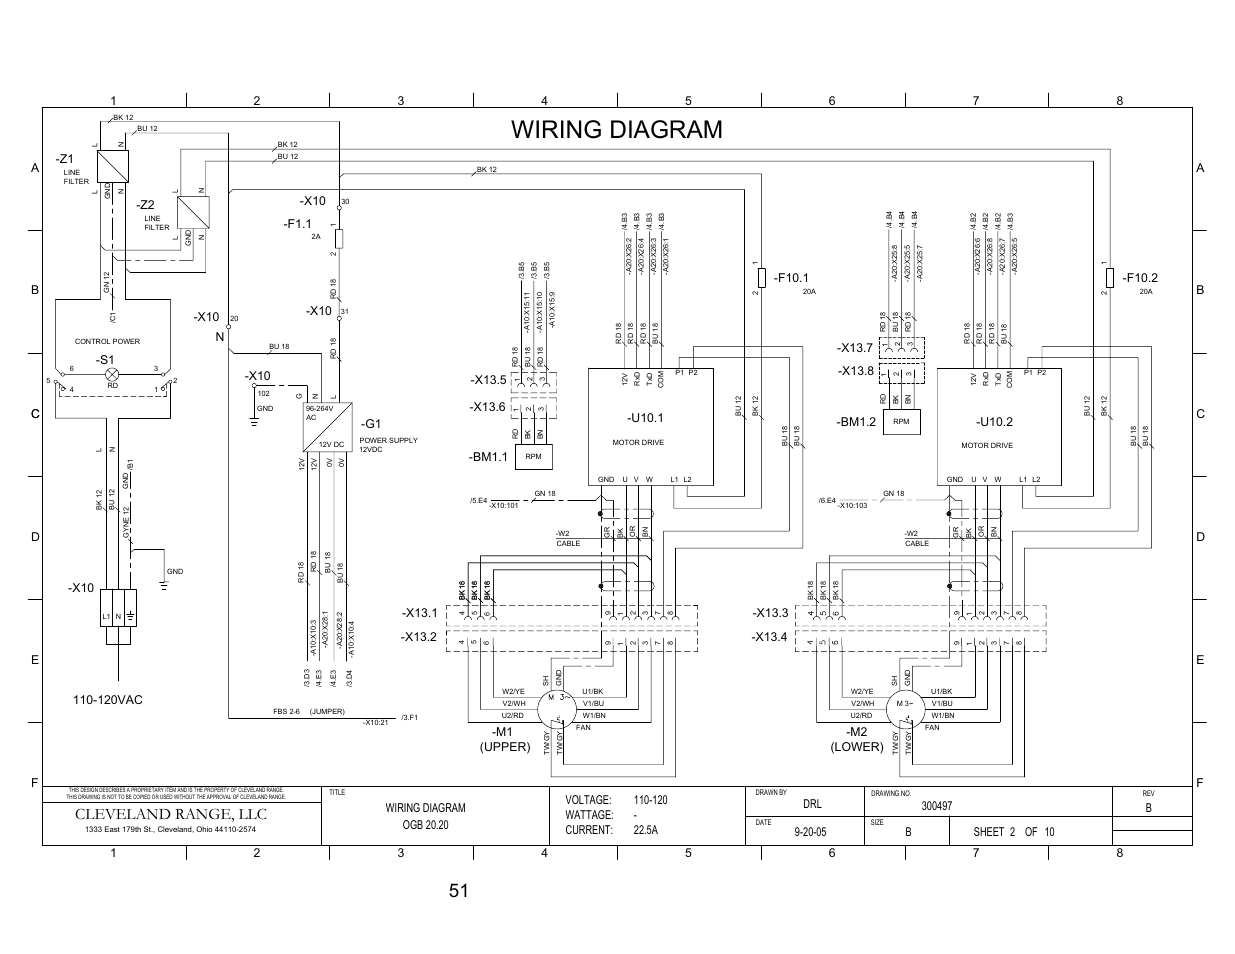 Cooker Wiring Diagram 6 10 From 75 Votes Cooker Wiring Diagram 6 10